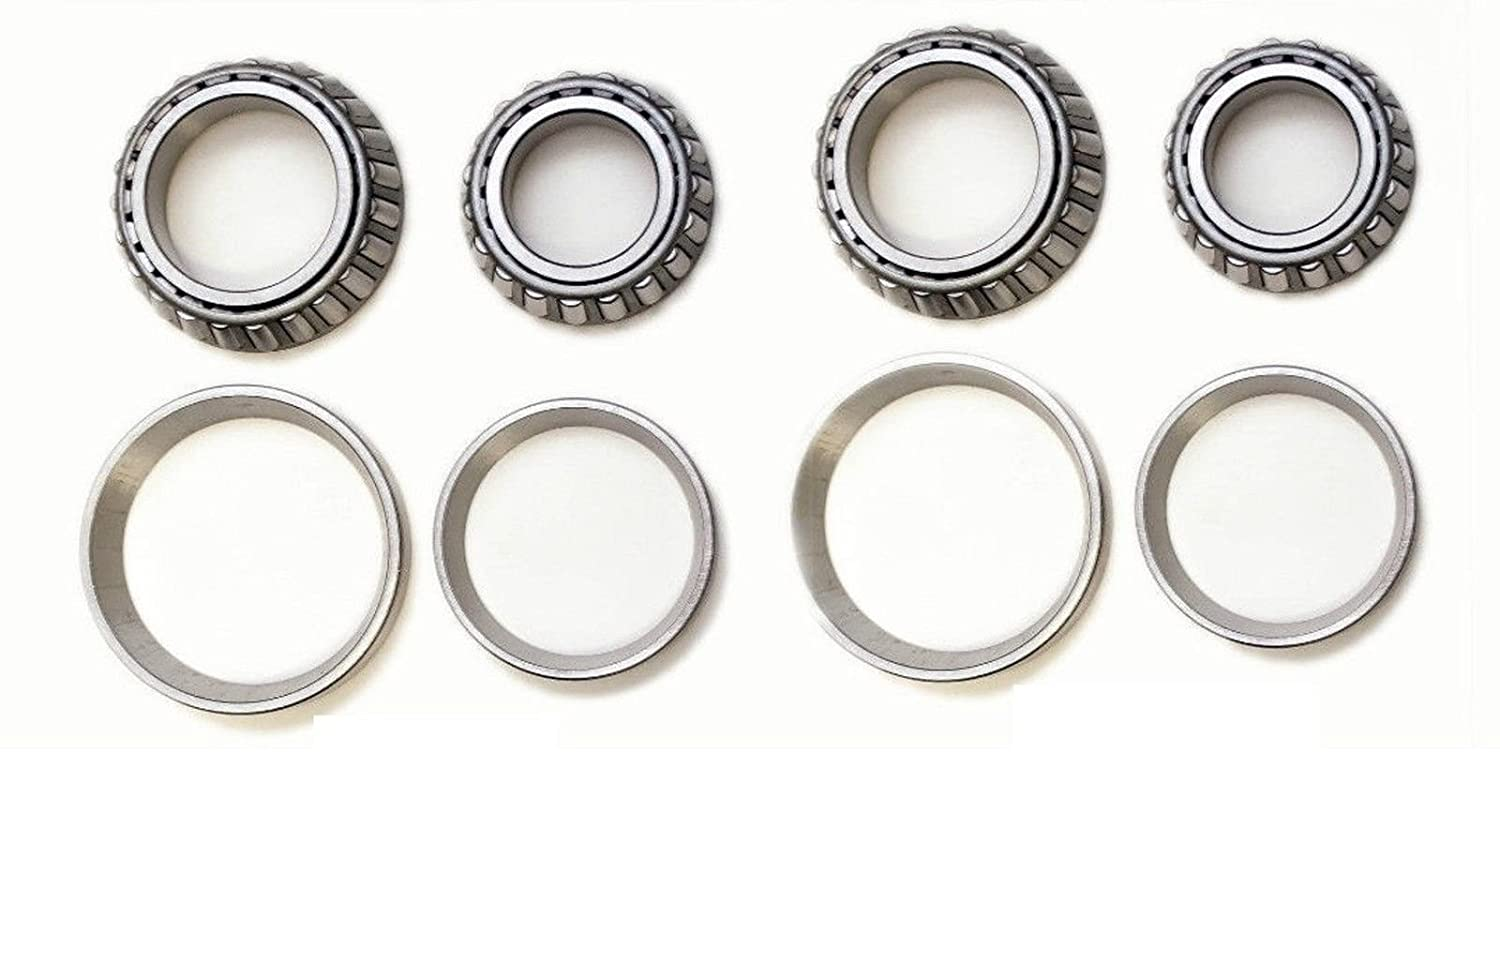 2WD 4WD Front Left /& Right Wheel Bearing Kit Fit NISSAN 200SX 1977 1978 1979 1980 1981 1982 1983 1984 1985 1986 1987 1988